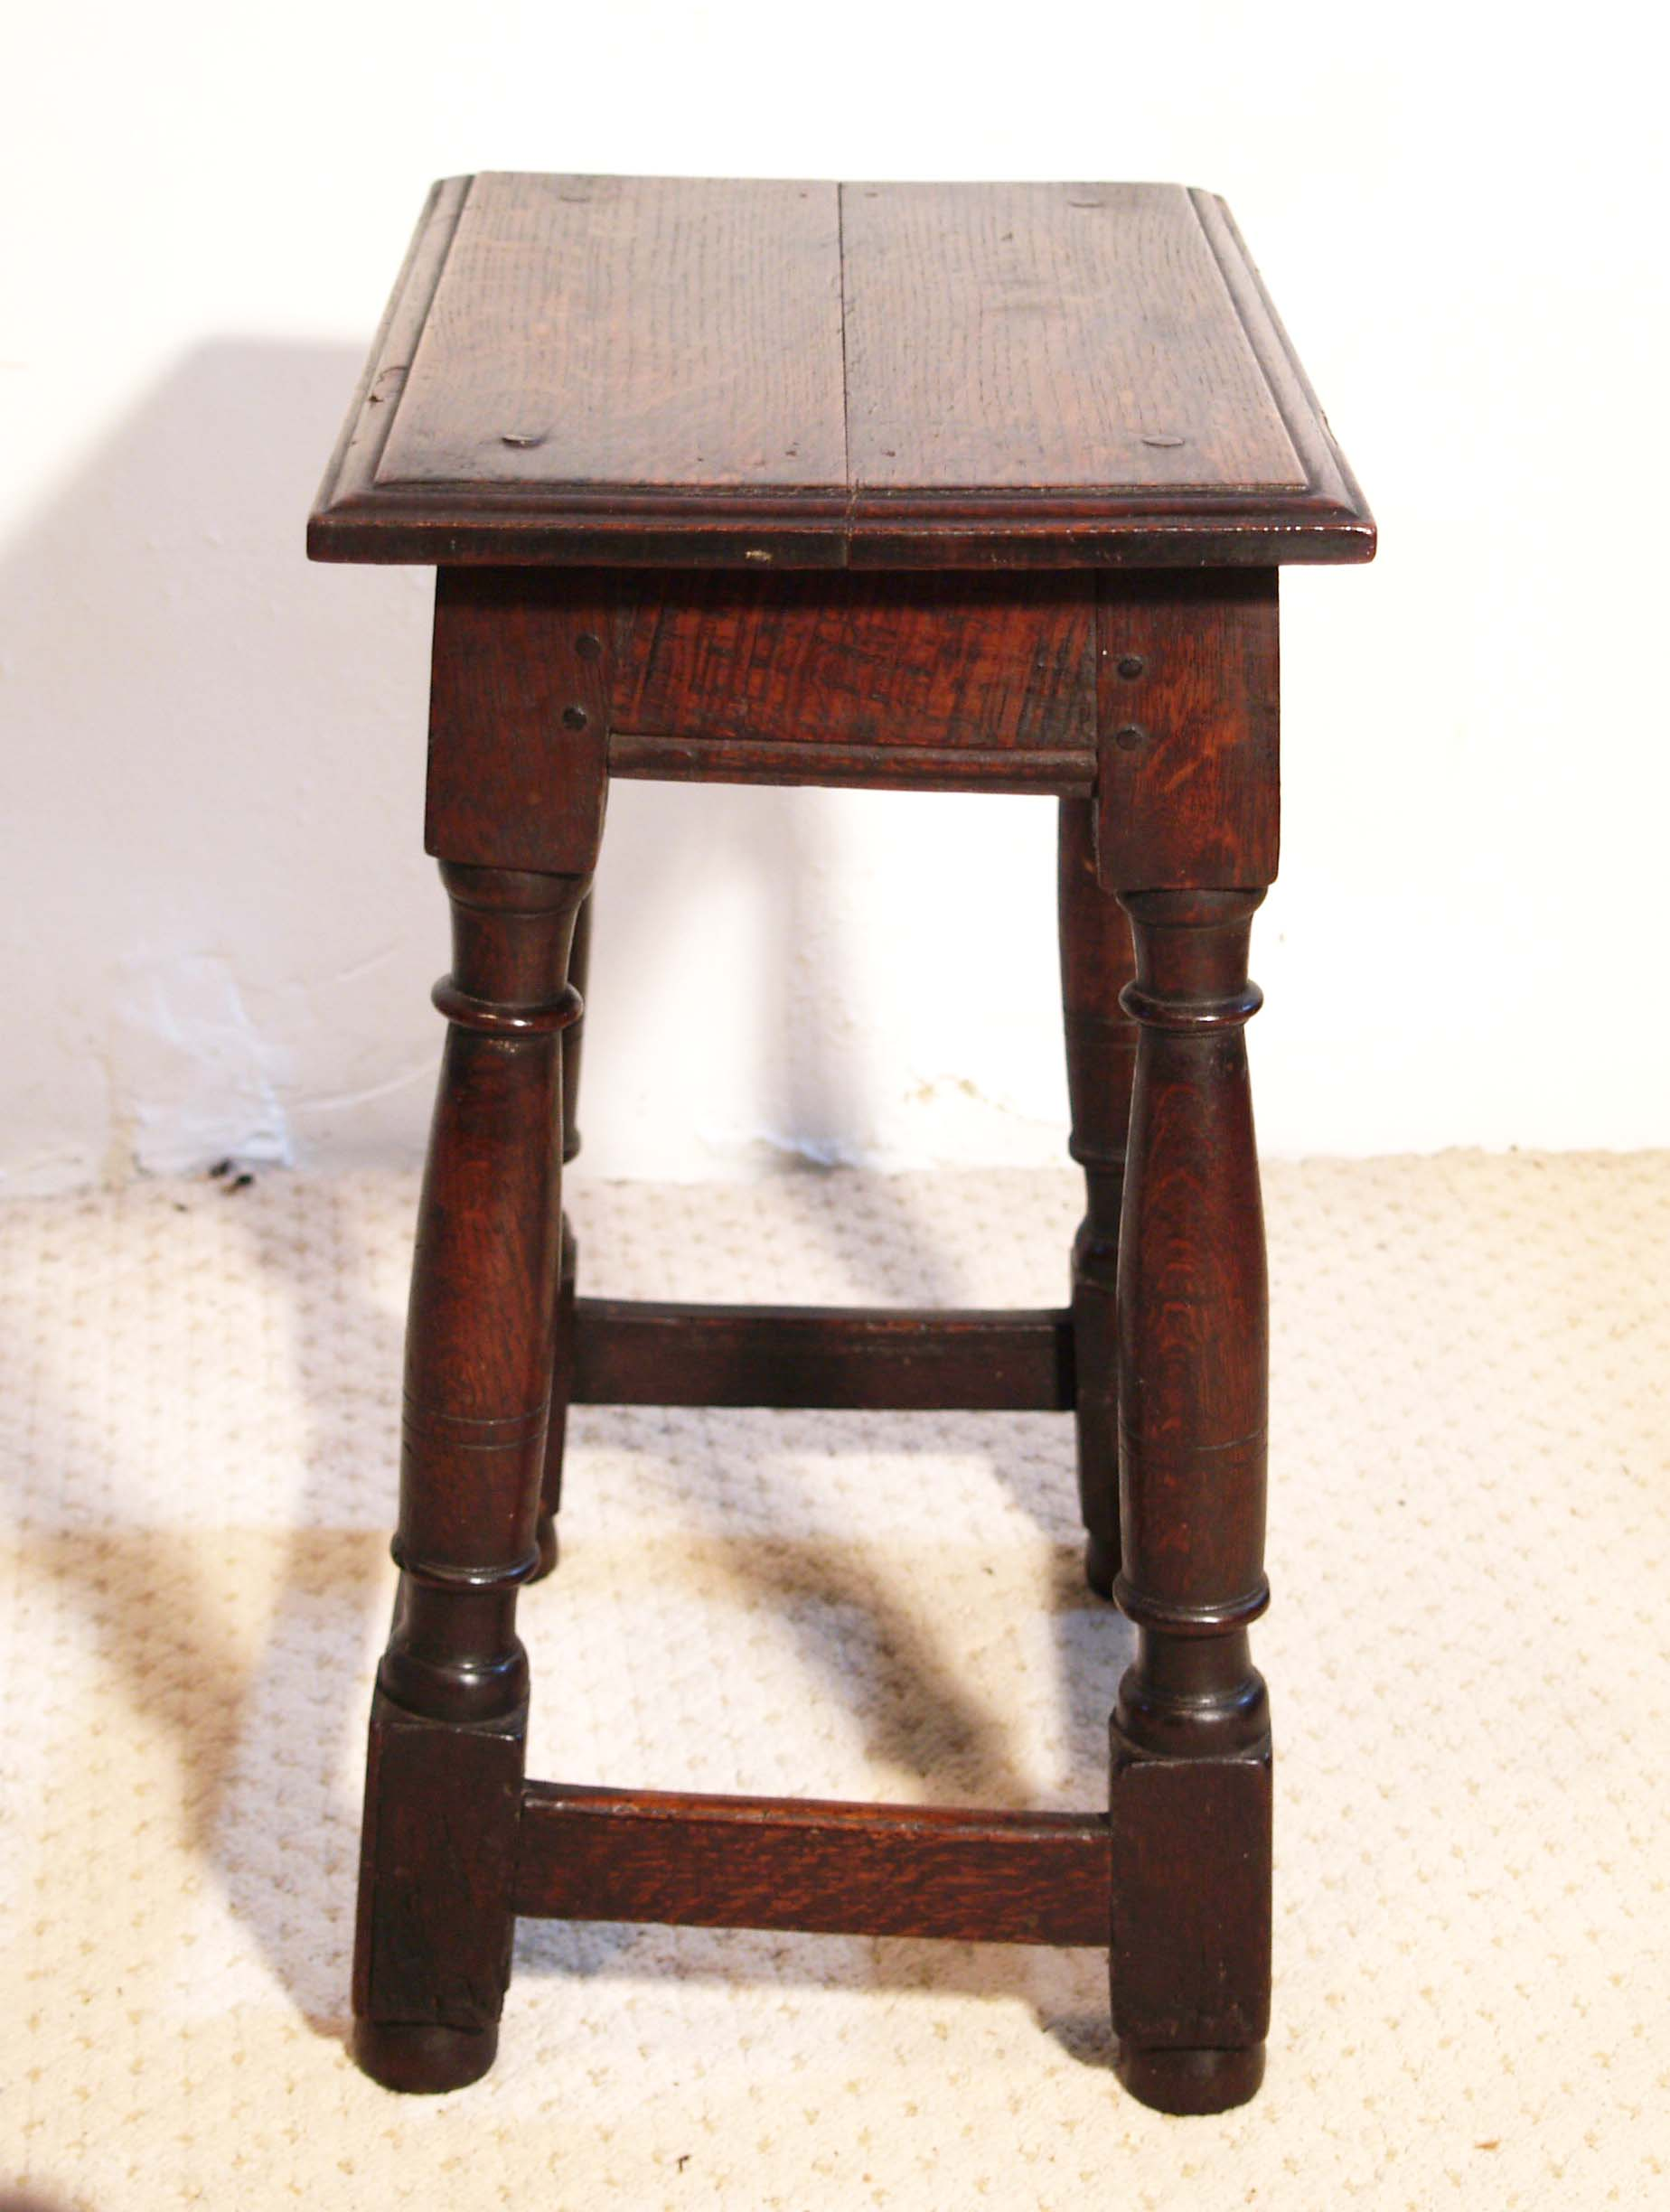 English antique vintage oak joint stool, end